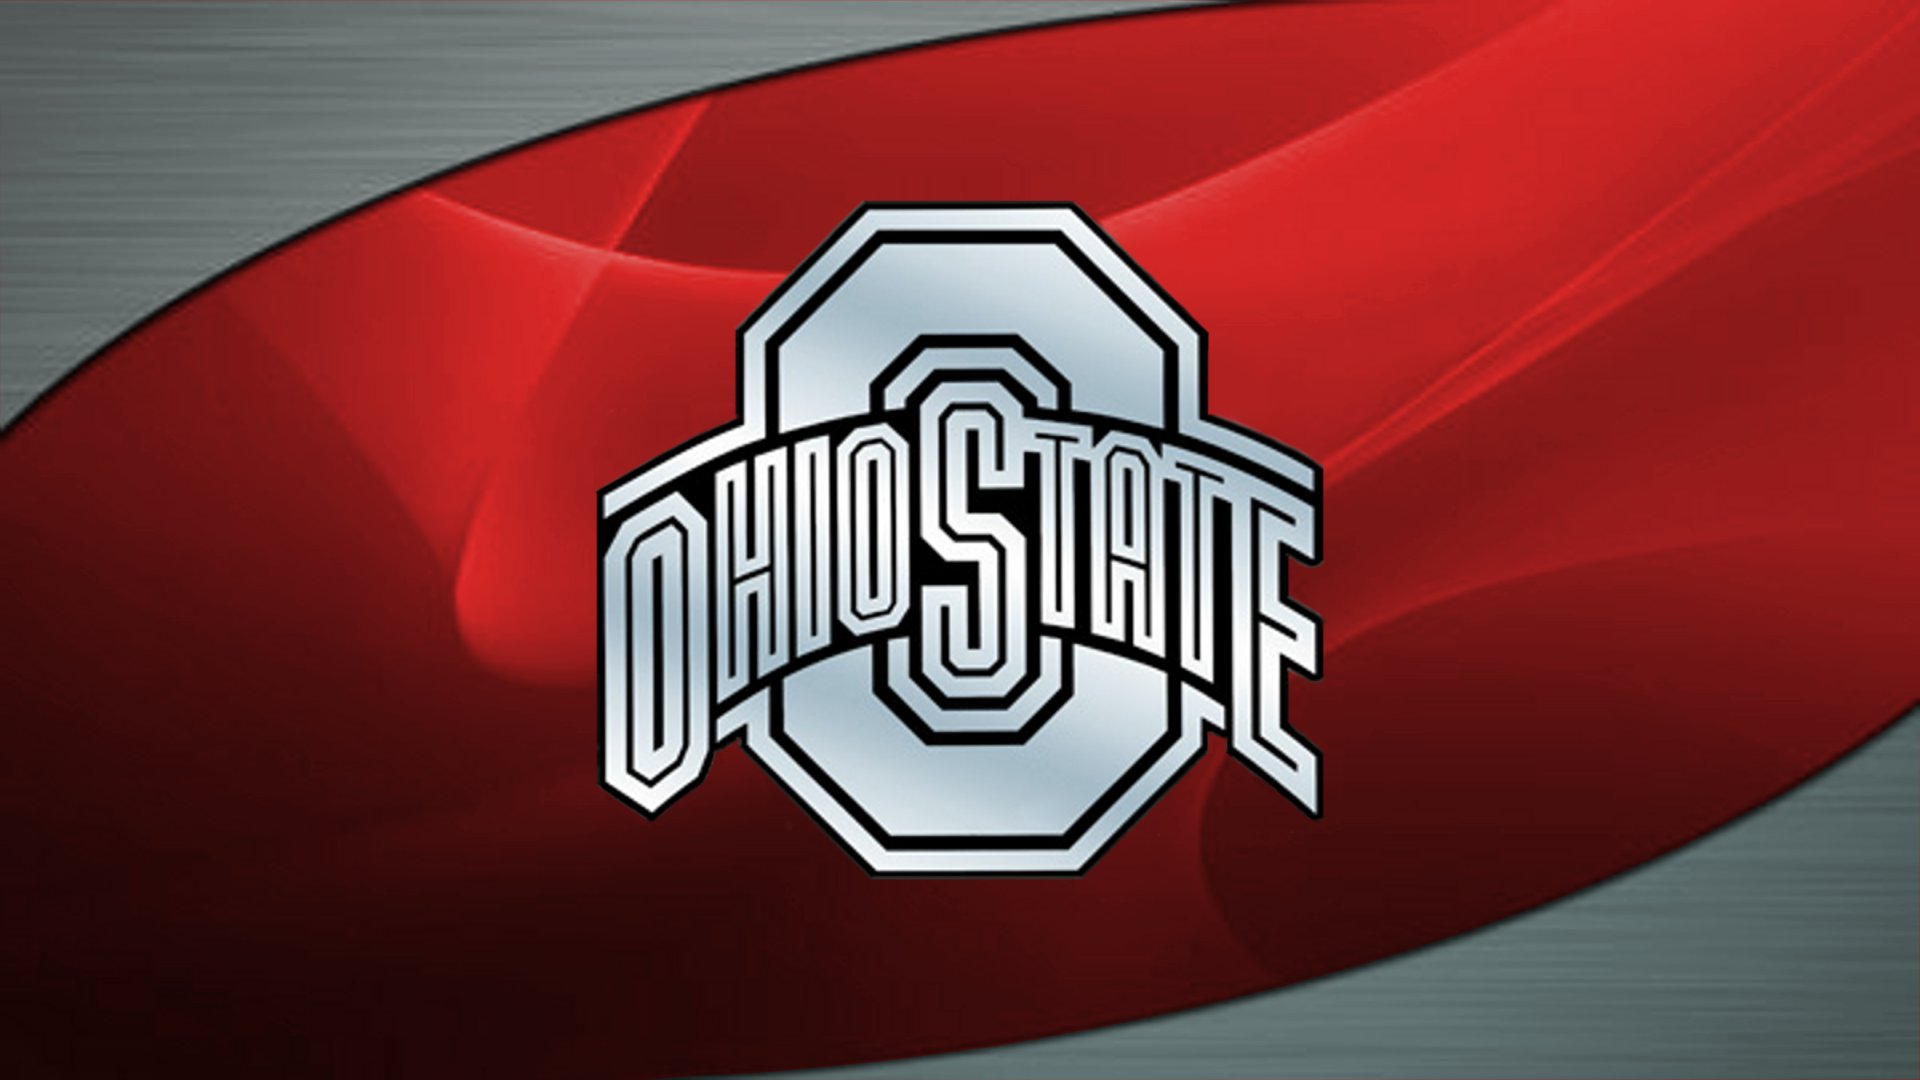 OHIO STATE BUCKEYES college football 18 wallpaper background 1920x1080